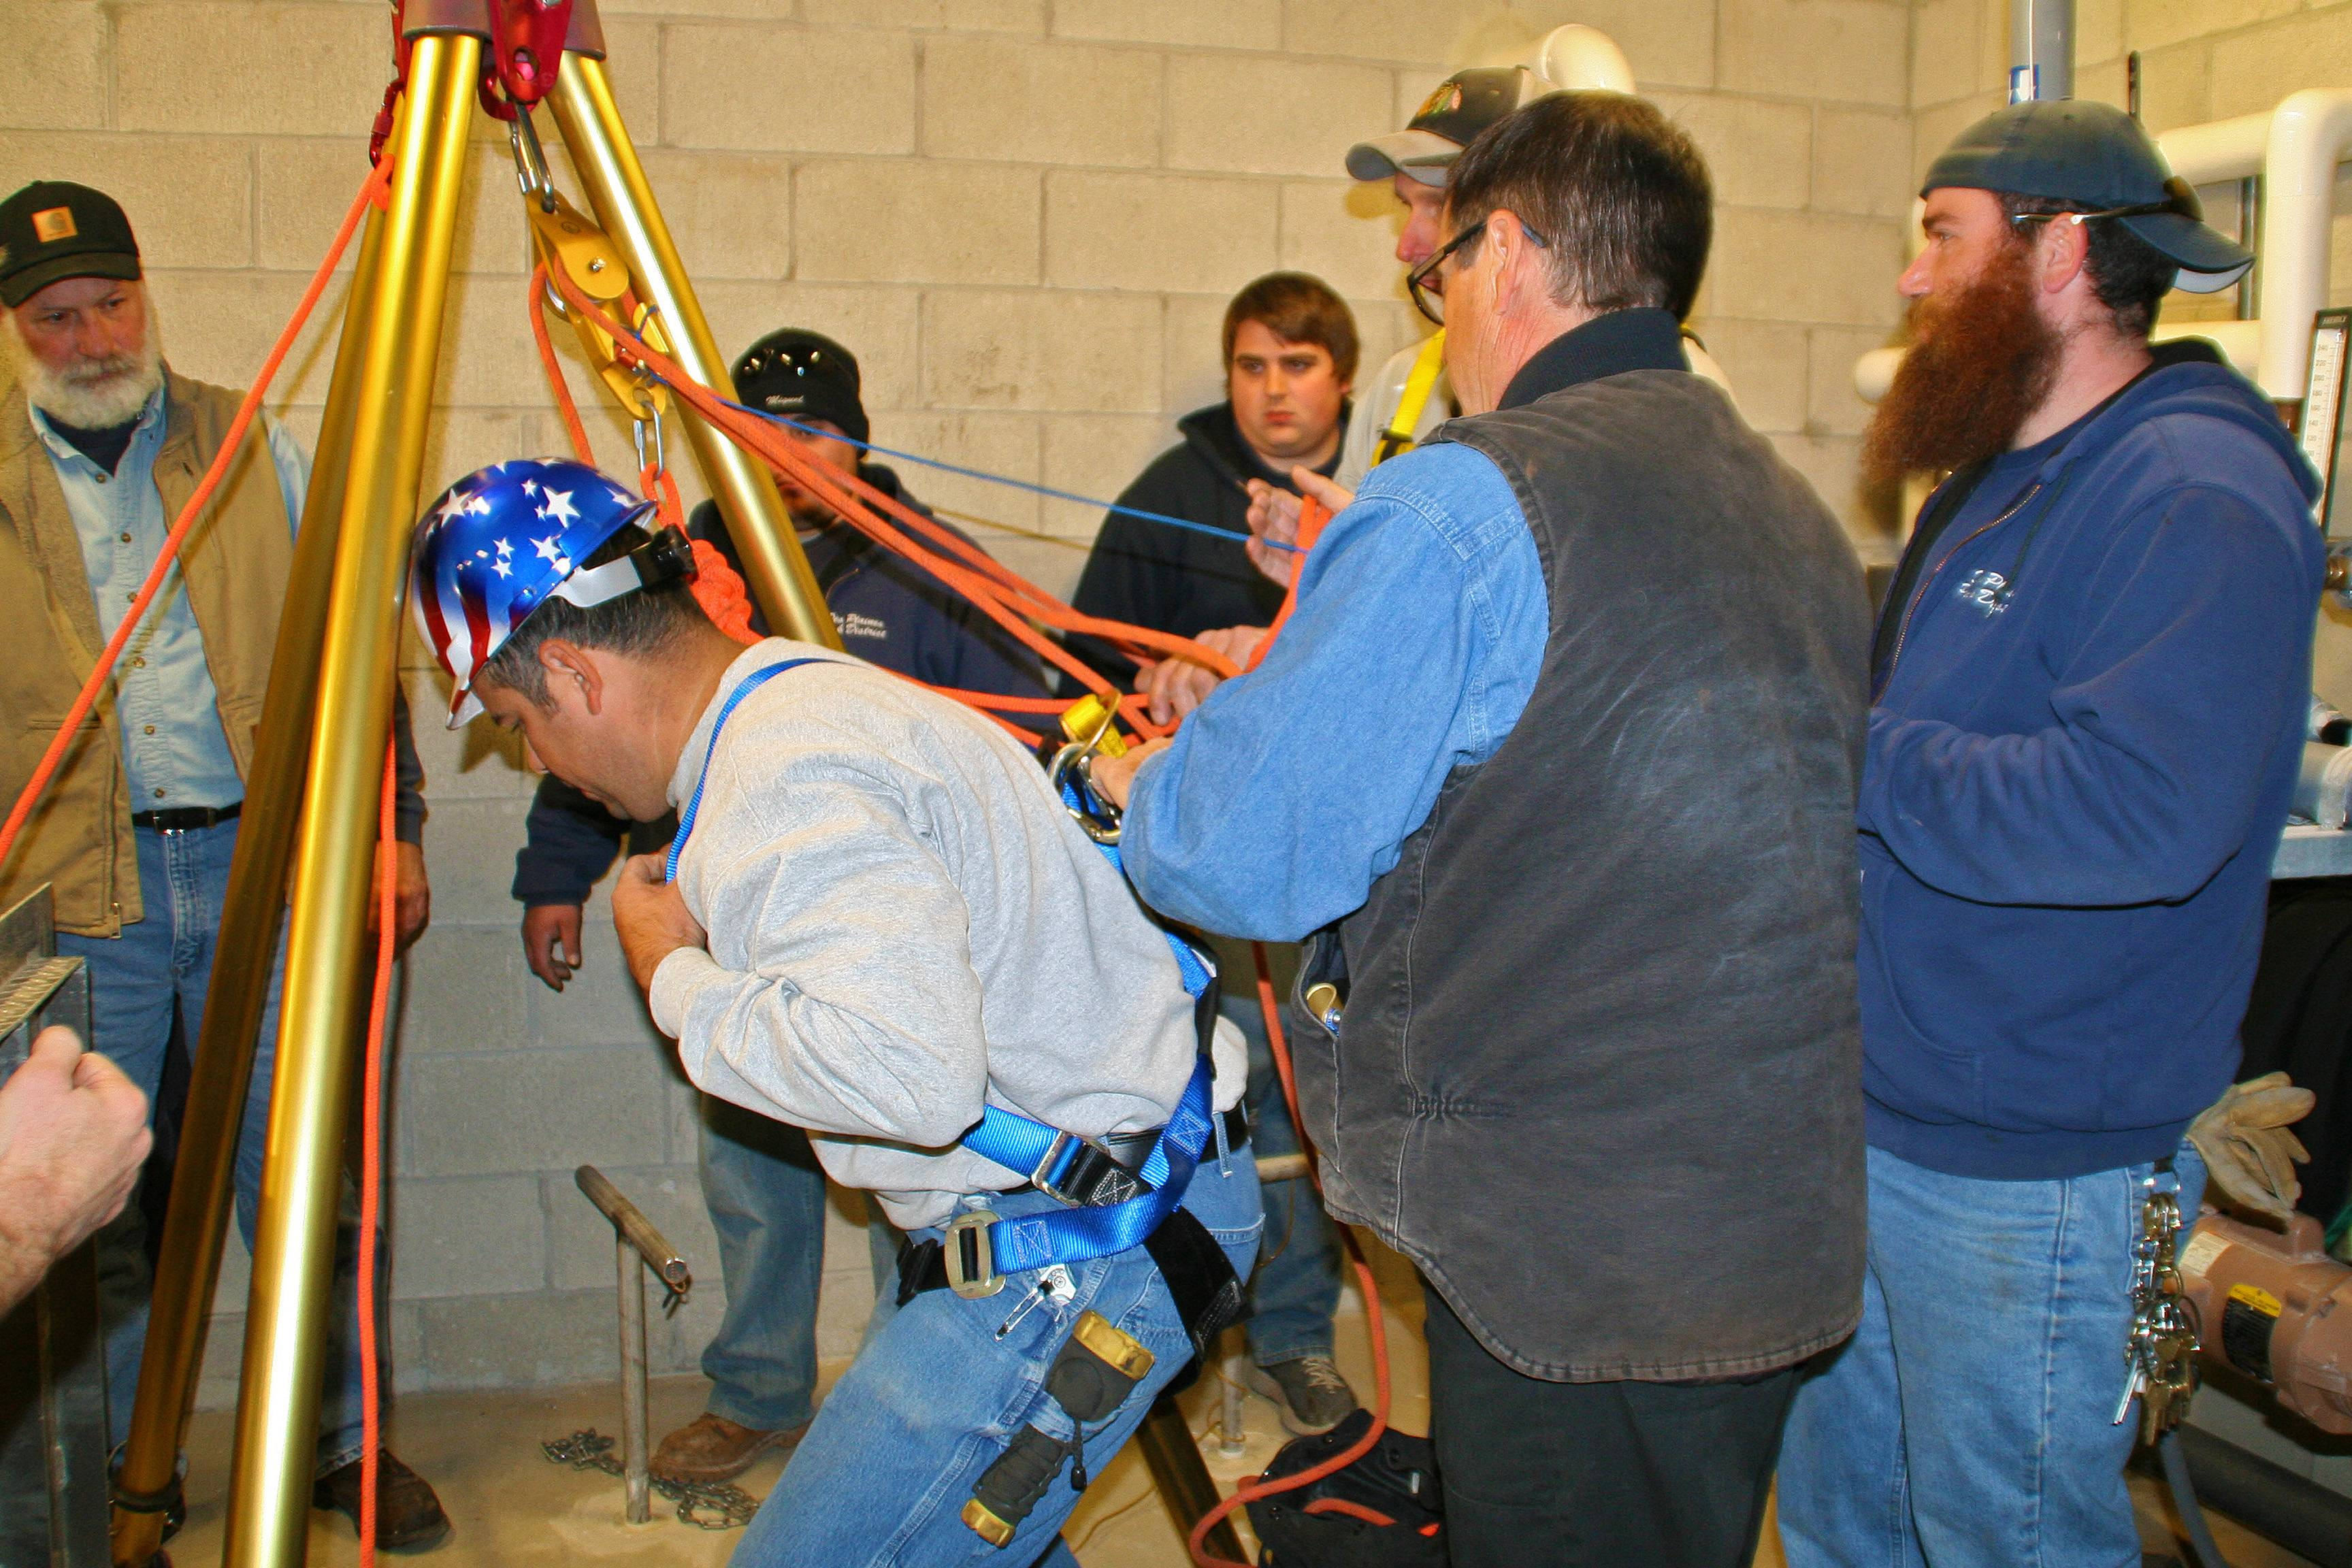 Sesar Botello is clipped into the harness attached to the Des Plaines Park District's entry and evacuation tripod during the Confined Space Entry and Non-Entry Rescue Training conducted by START Group.